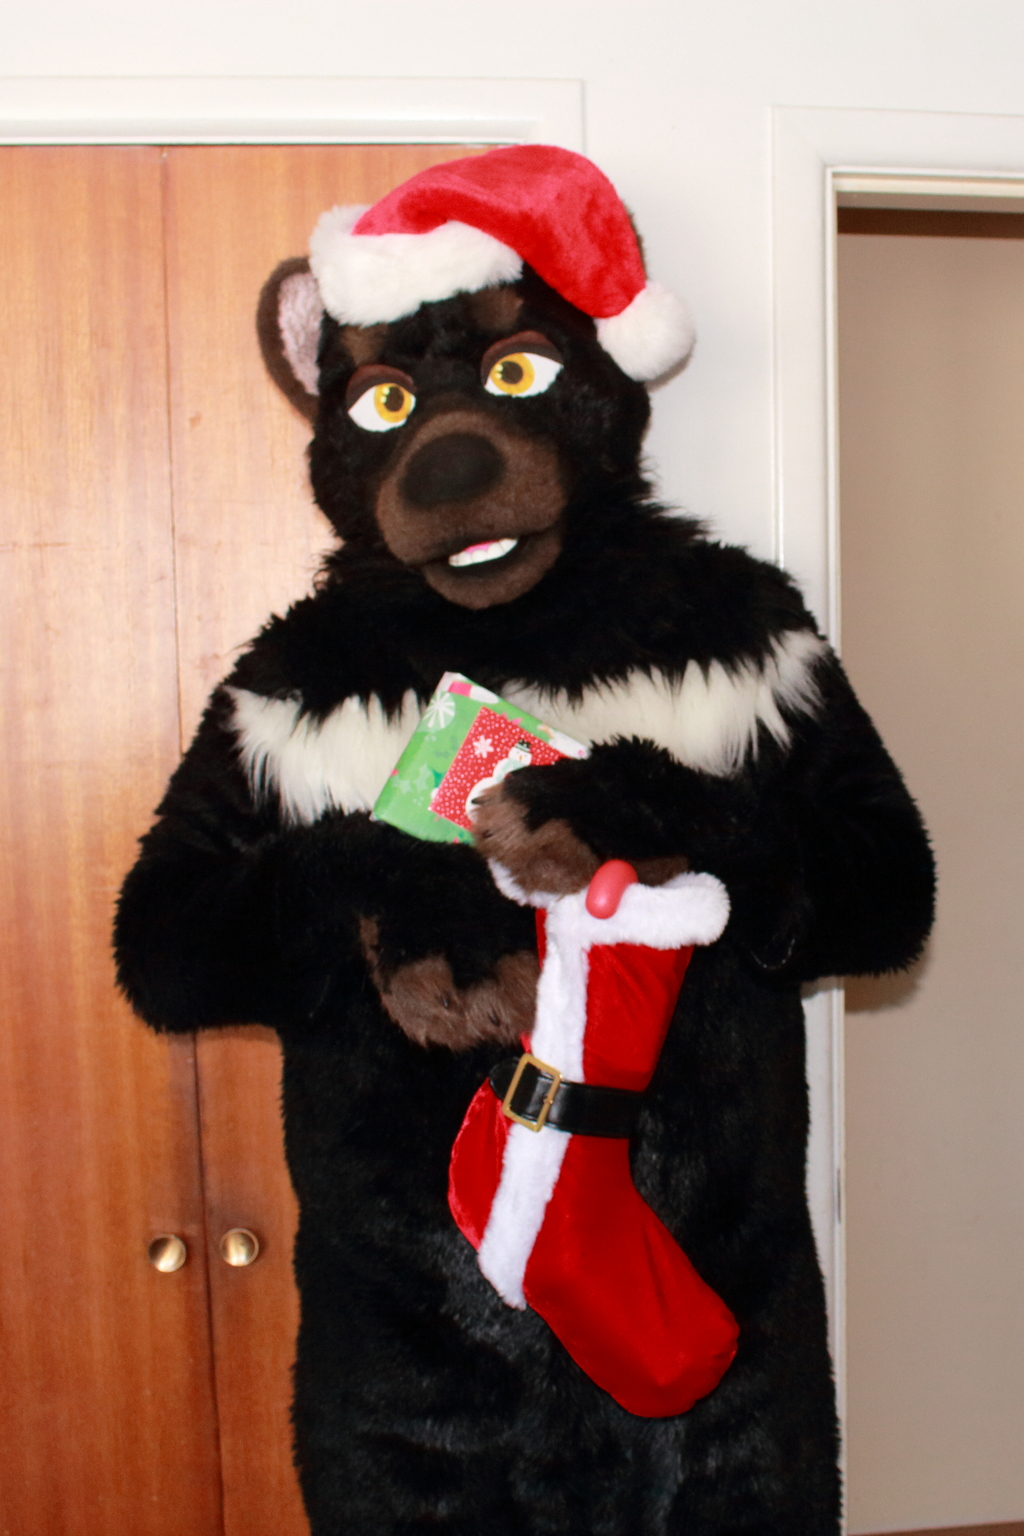 Most recent image: Merry Christmas to all on Weasyl